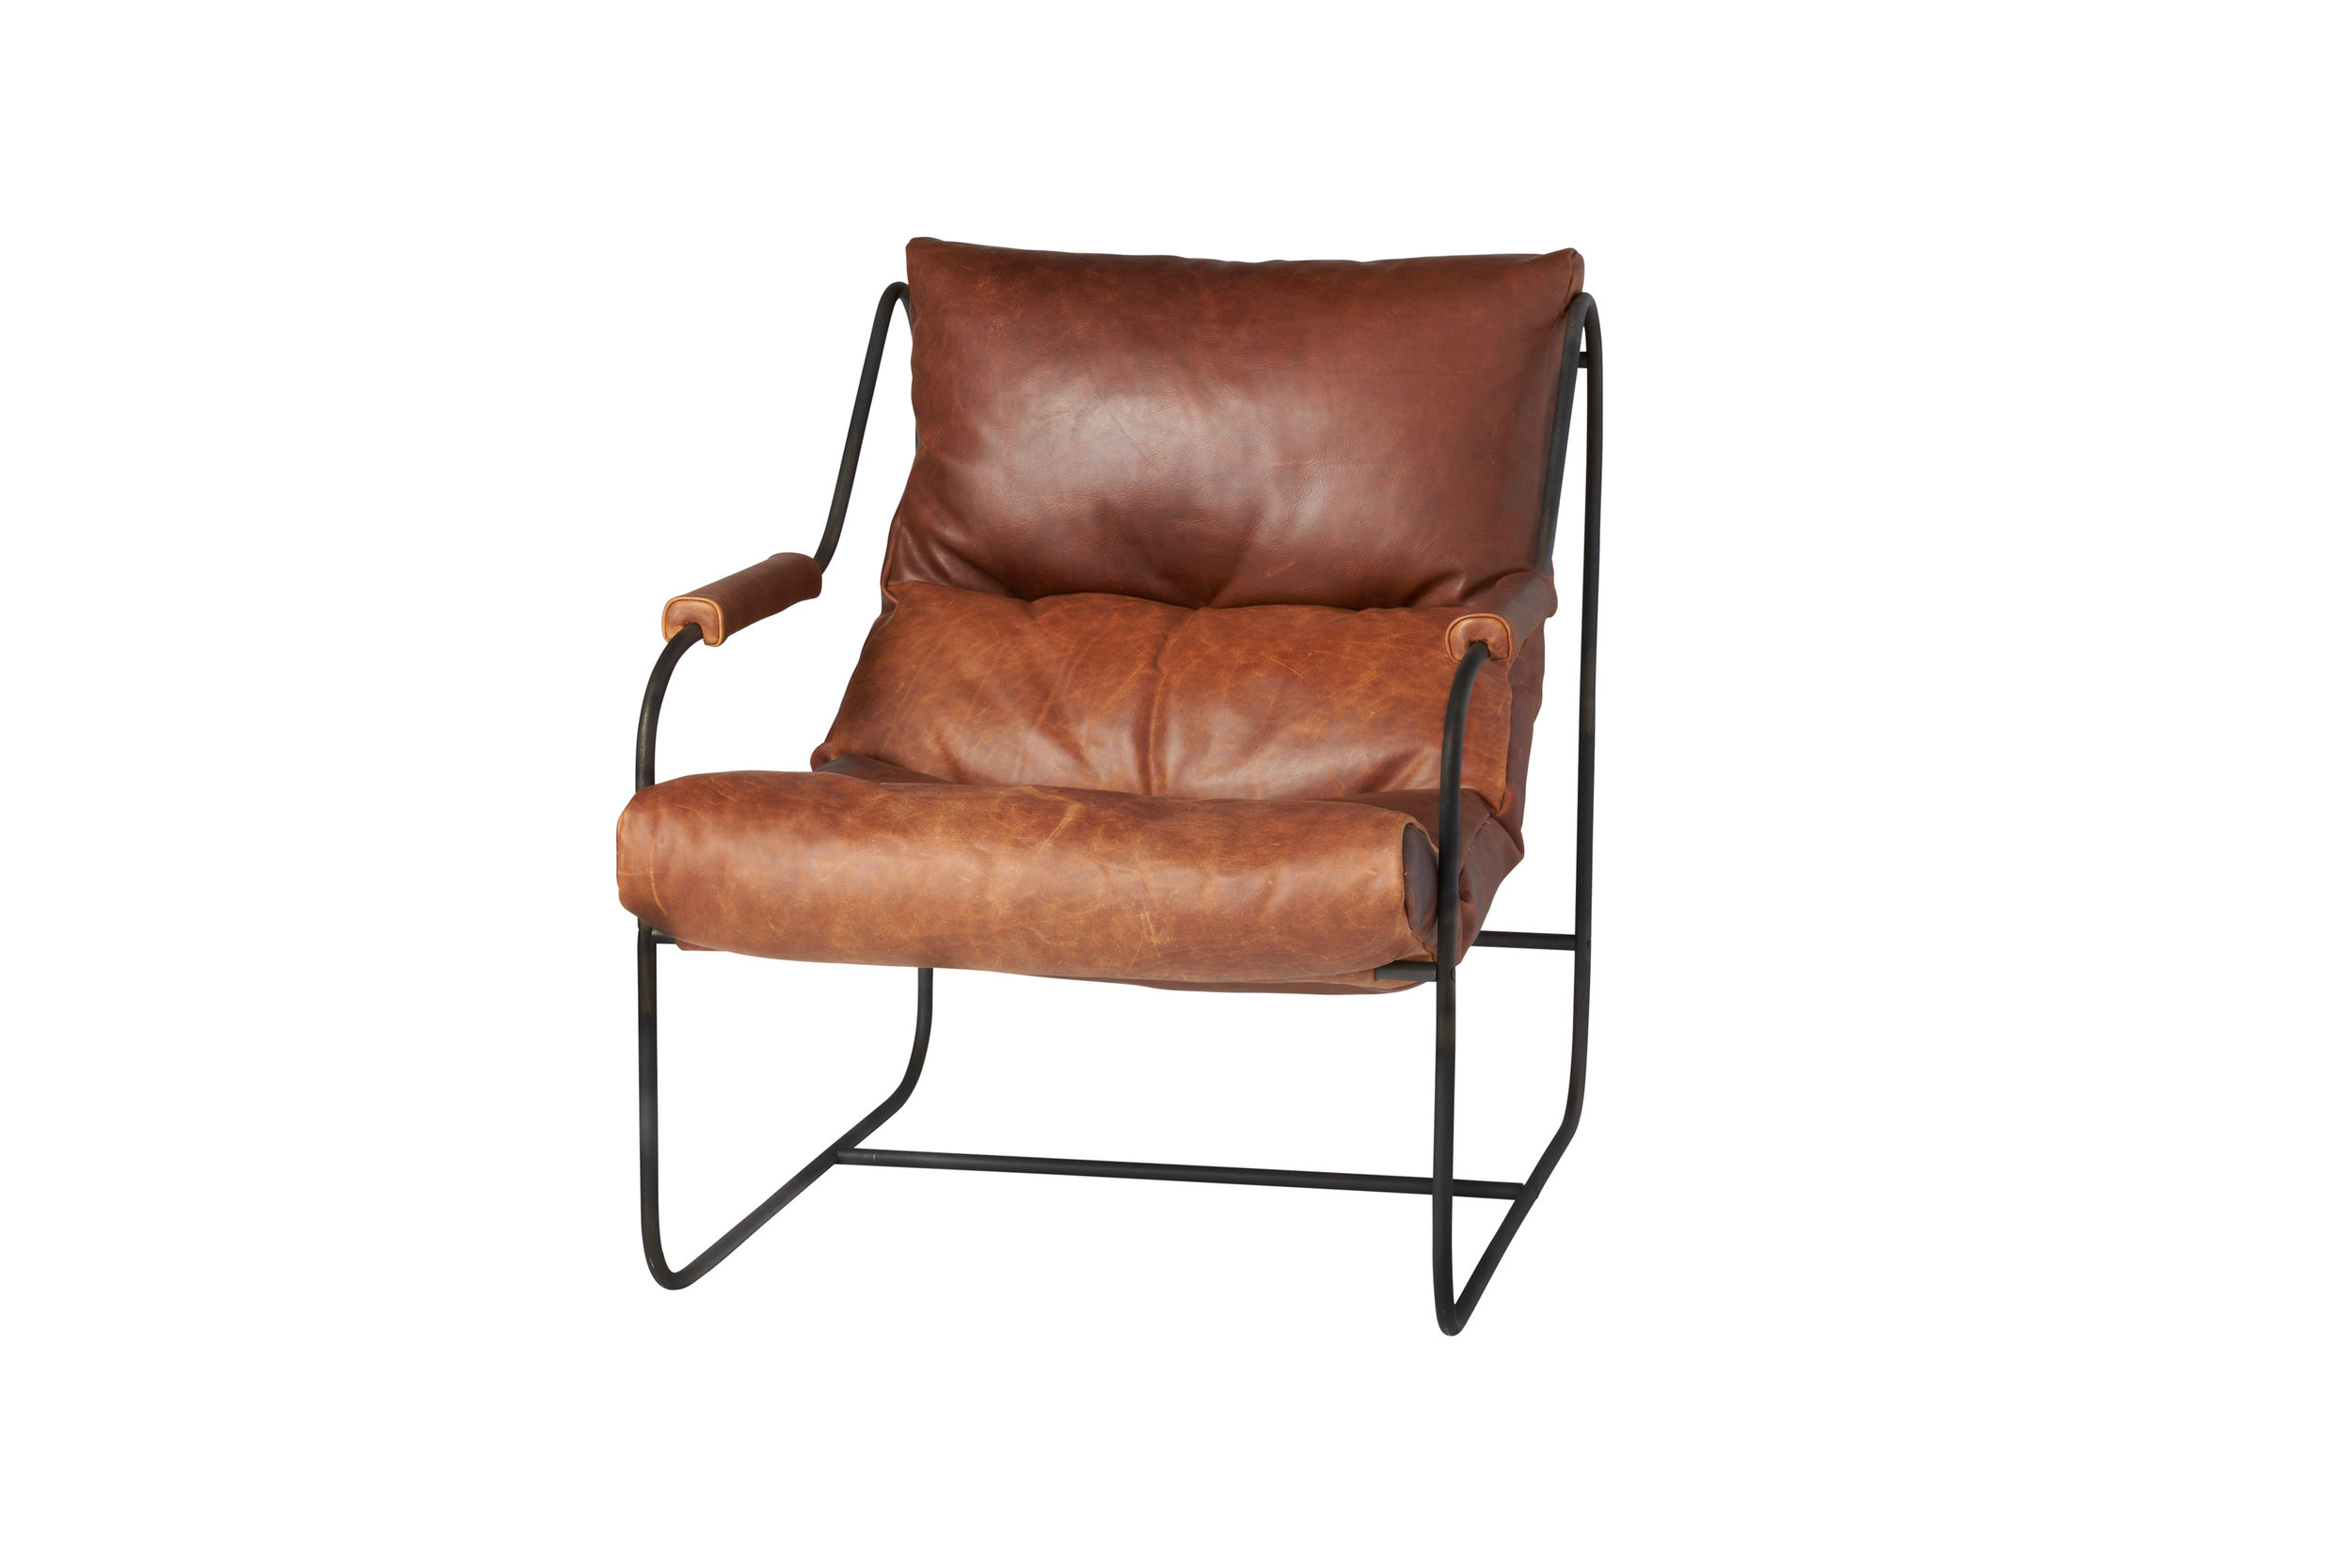 Brando_Chair_Terracotta_Spur_Side.jpg